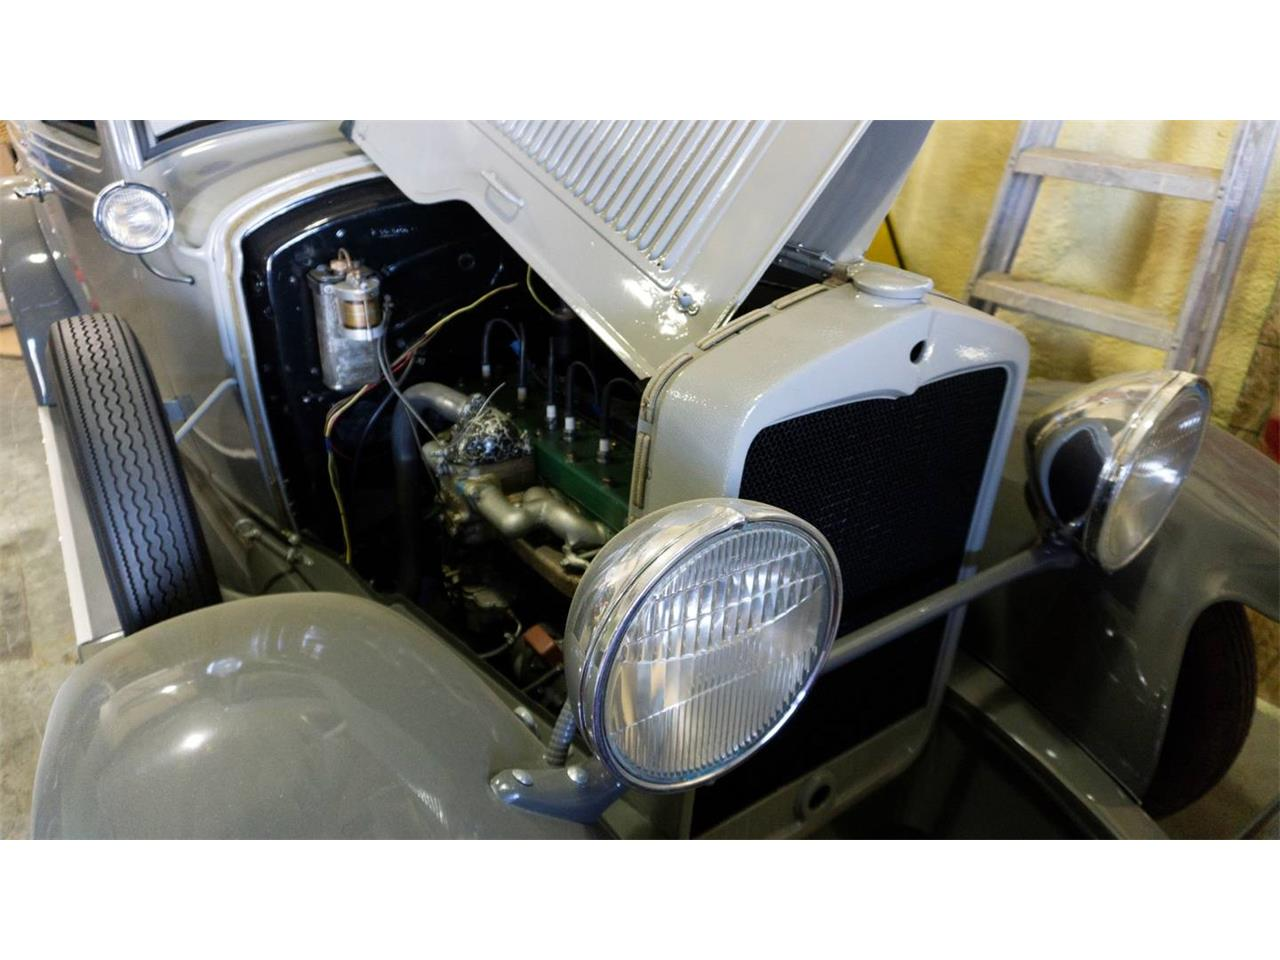 Large Picture of 1928 Hupmobile Coupe located in Louisiana Auction Vehicle Offered by Vicari Auction - NS60